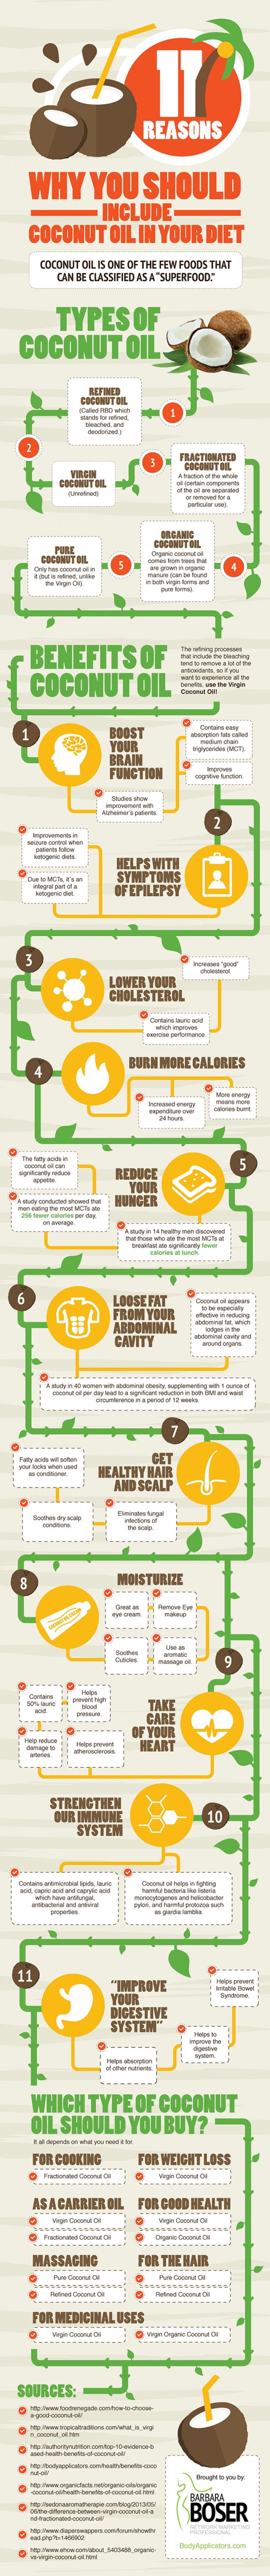 11 Reasons to Use Coconut Oil Infographic